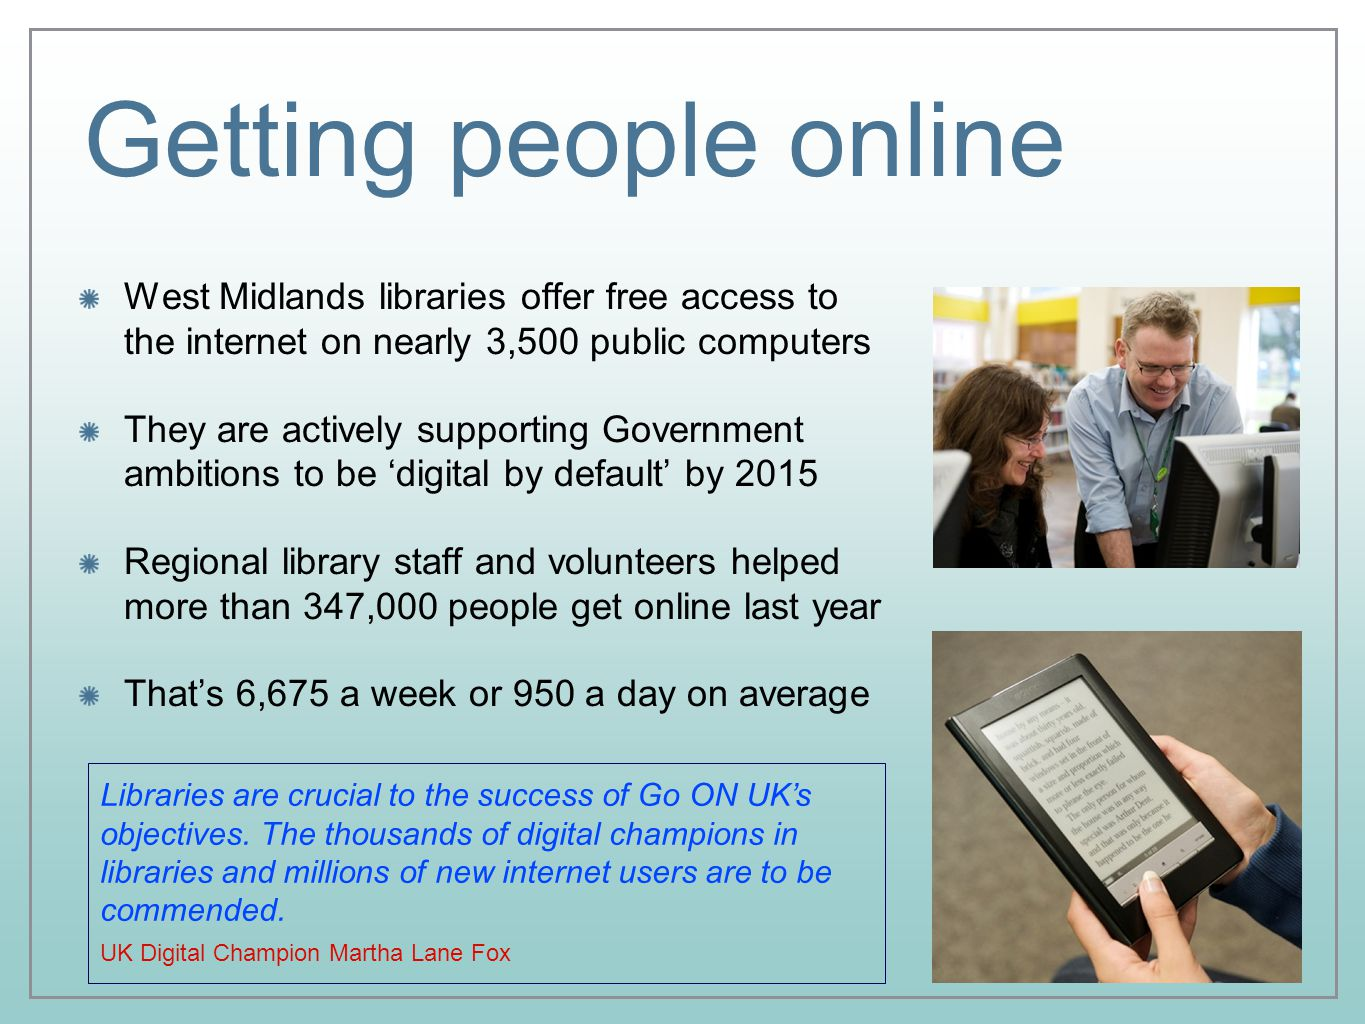 Getting people online West Midlands libraries offer free access to the internet on nearly 3,500 public computers They are actively supporting Government ambitions to be 'digital by default' by 2015 Regional library staff and volunteers helped more than 347,000 people get online last year That's 6,675 a week or 950 a day on average Libraries are crucial to the success of Go ON UK's objectives.